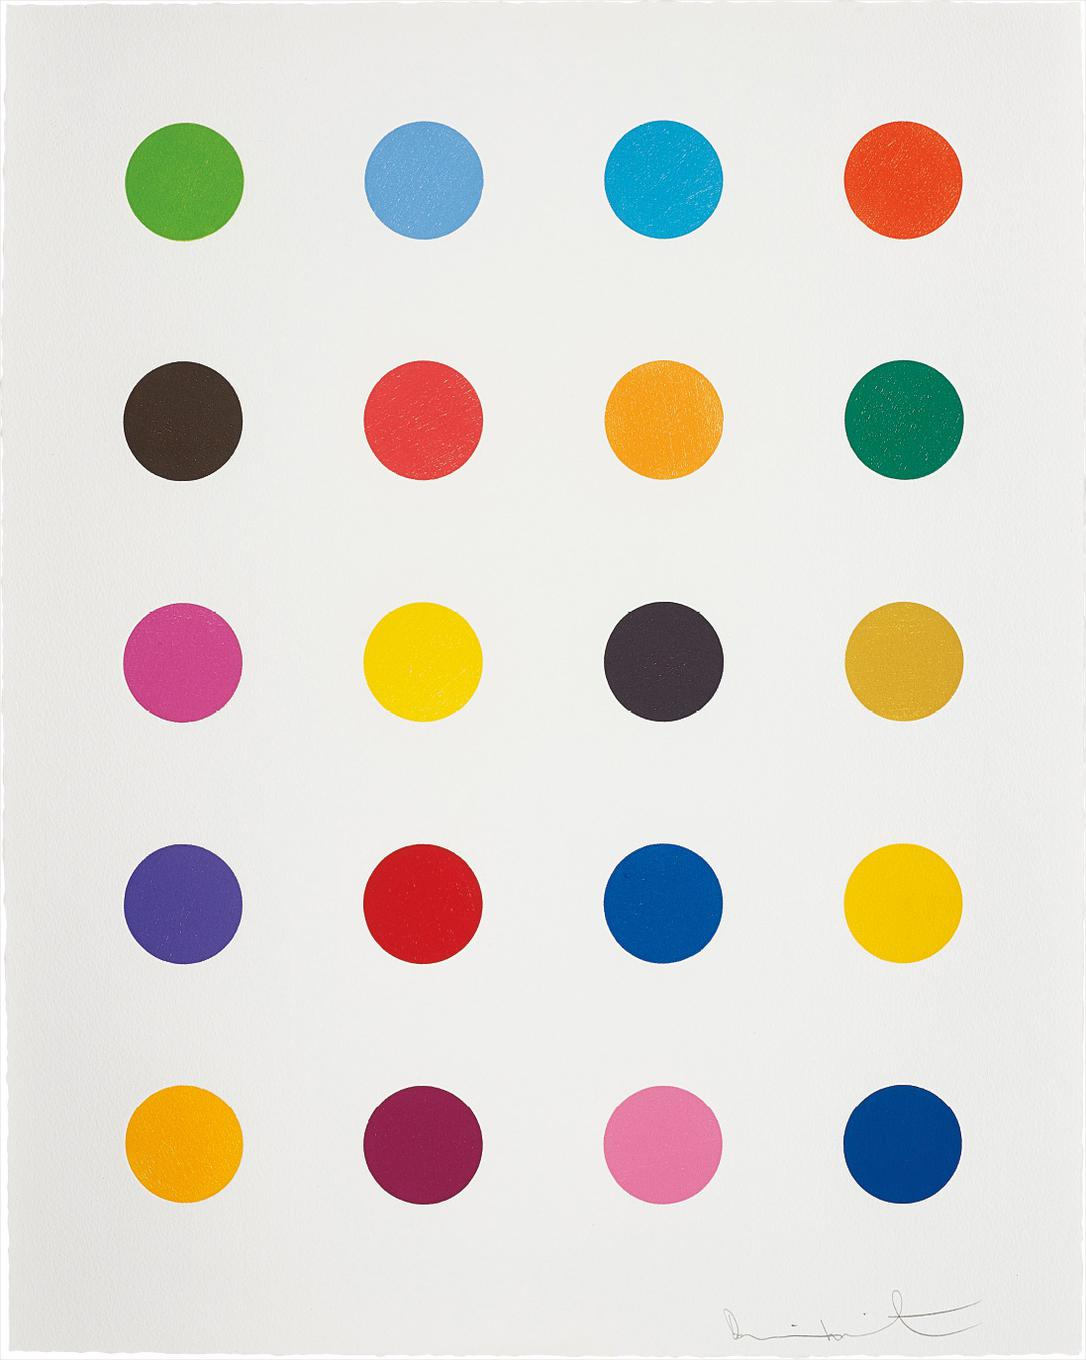 Damien Hirst-Benzyloxyurea, From 40 Woodcut Spots-2011